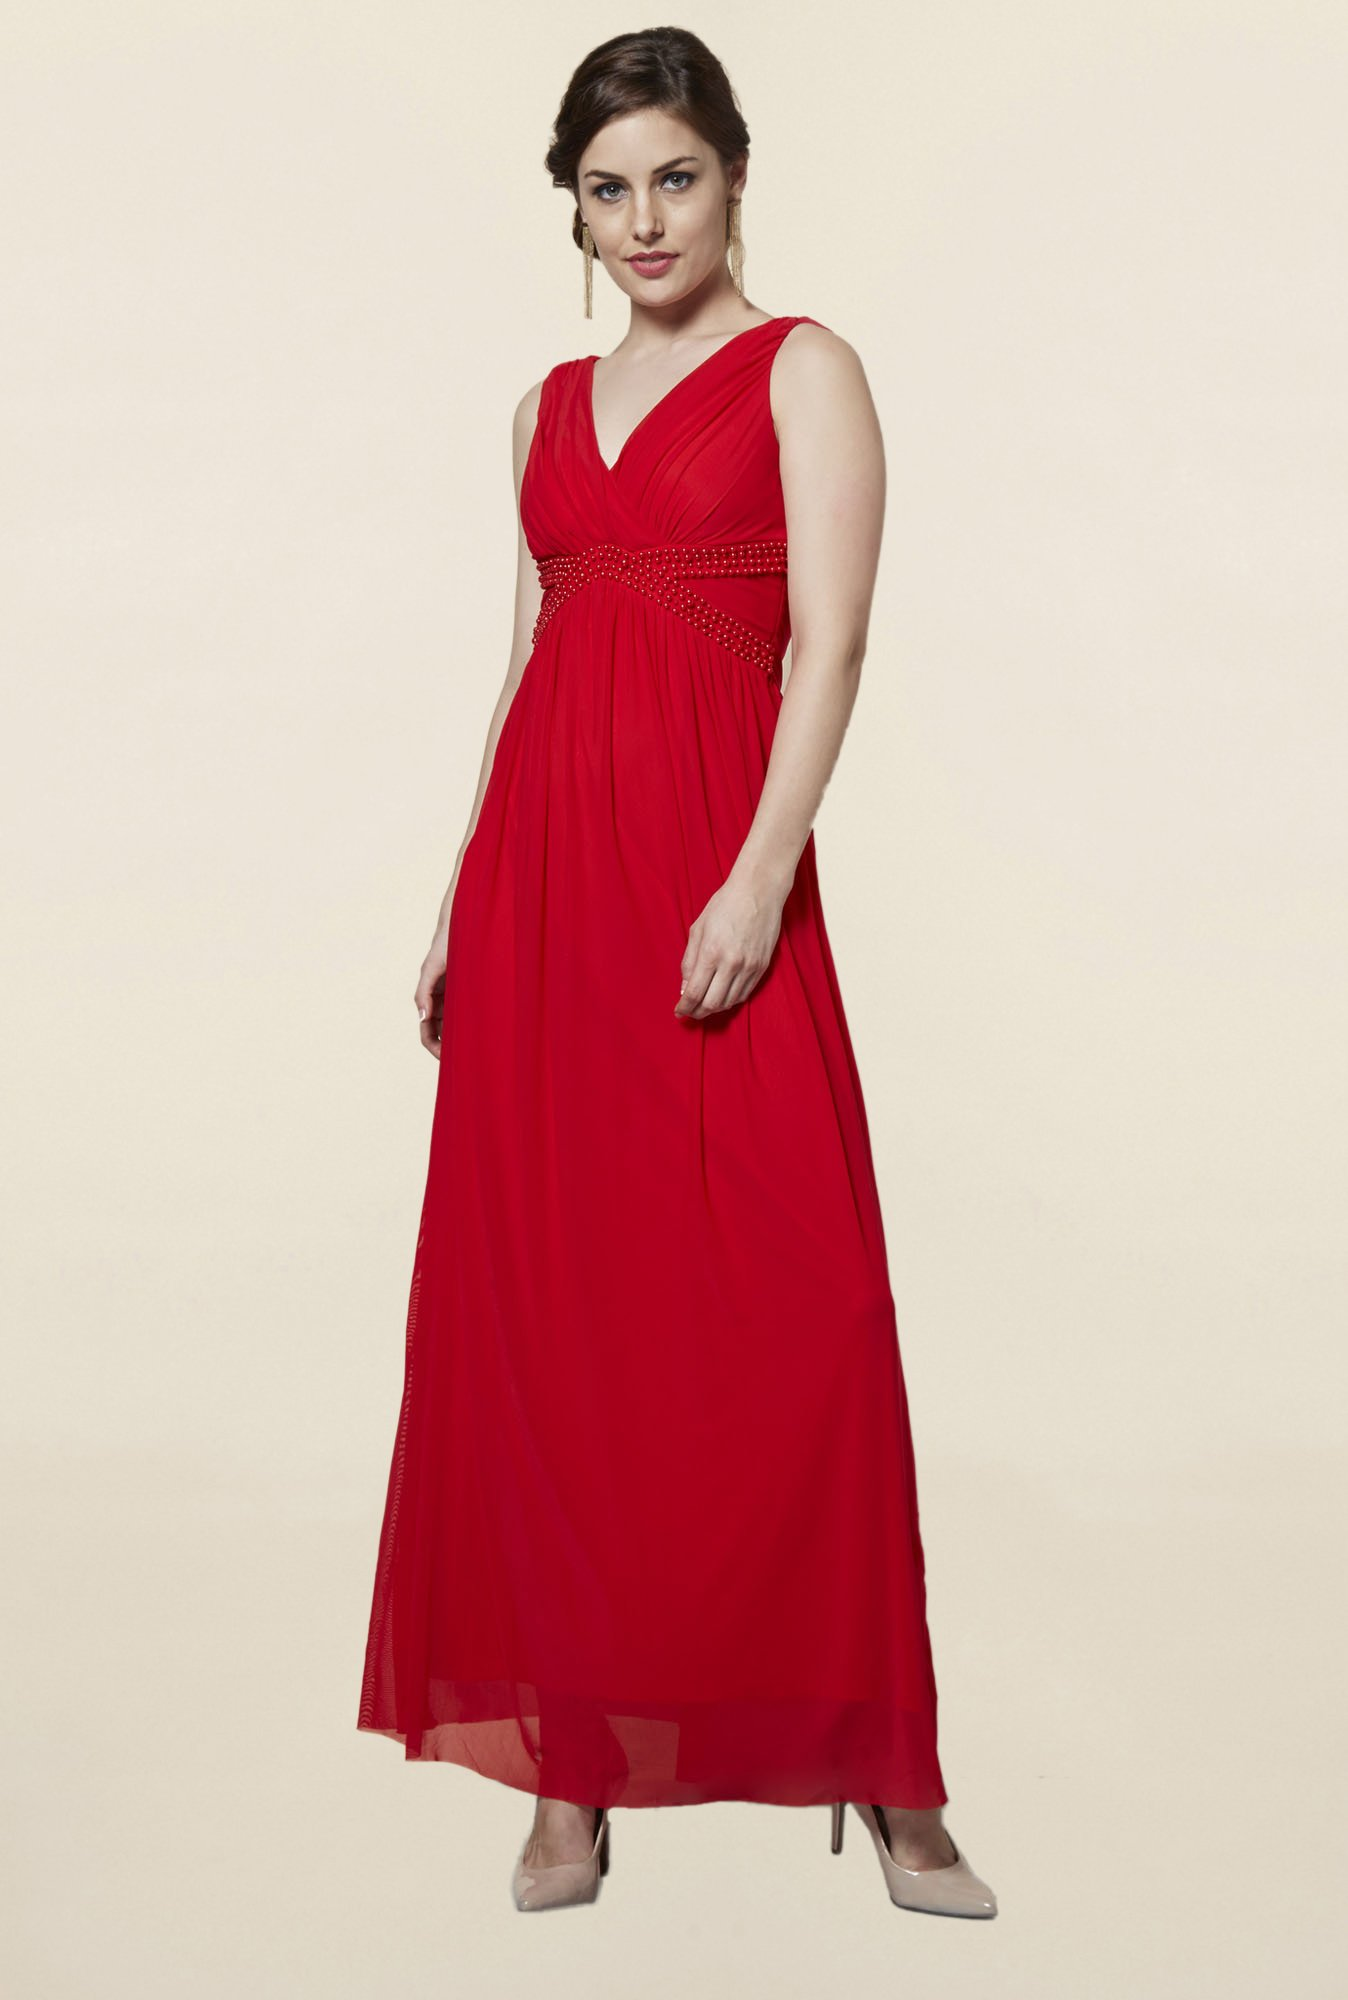 FG4 London Scarlet Red Maxi Dress